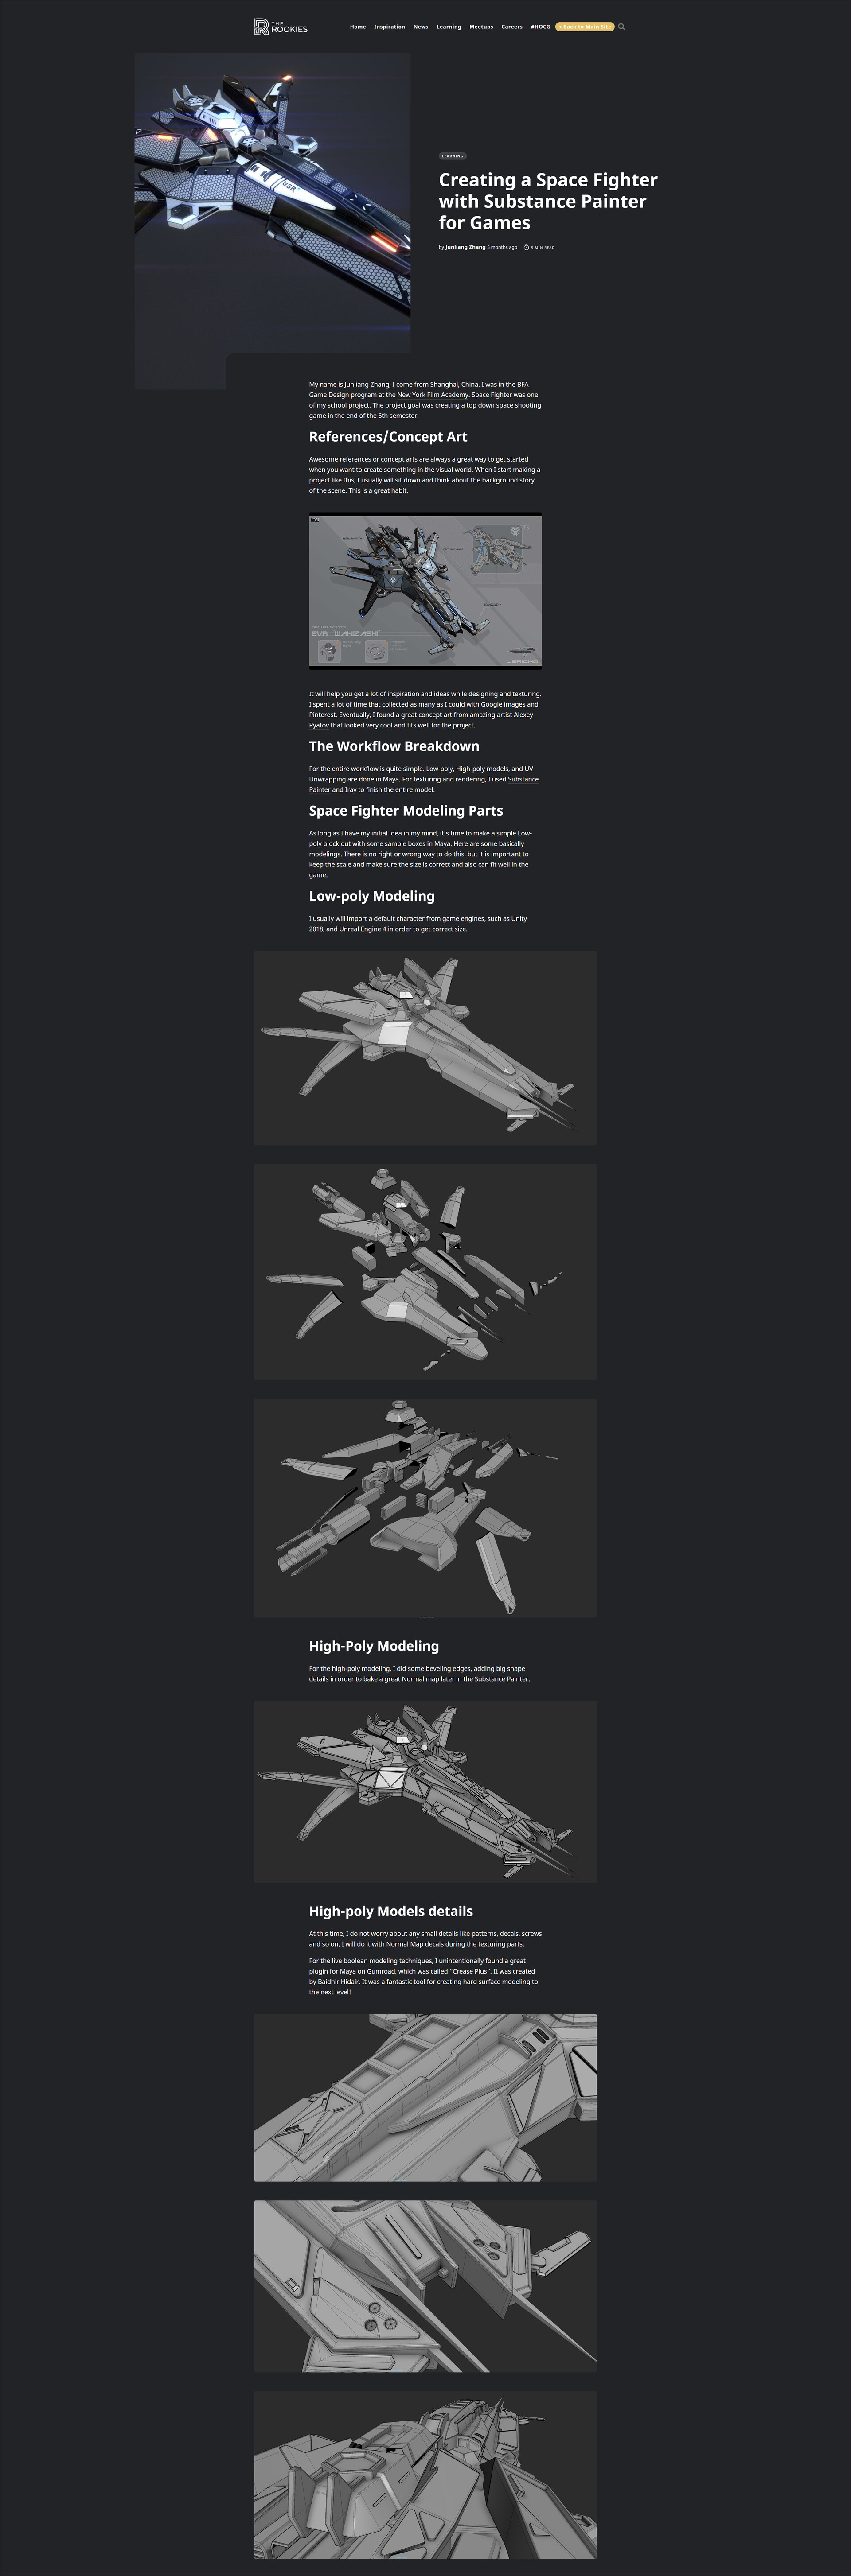 Junliang zhang creating a space fighter with substance painter for games 01